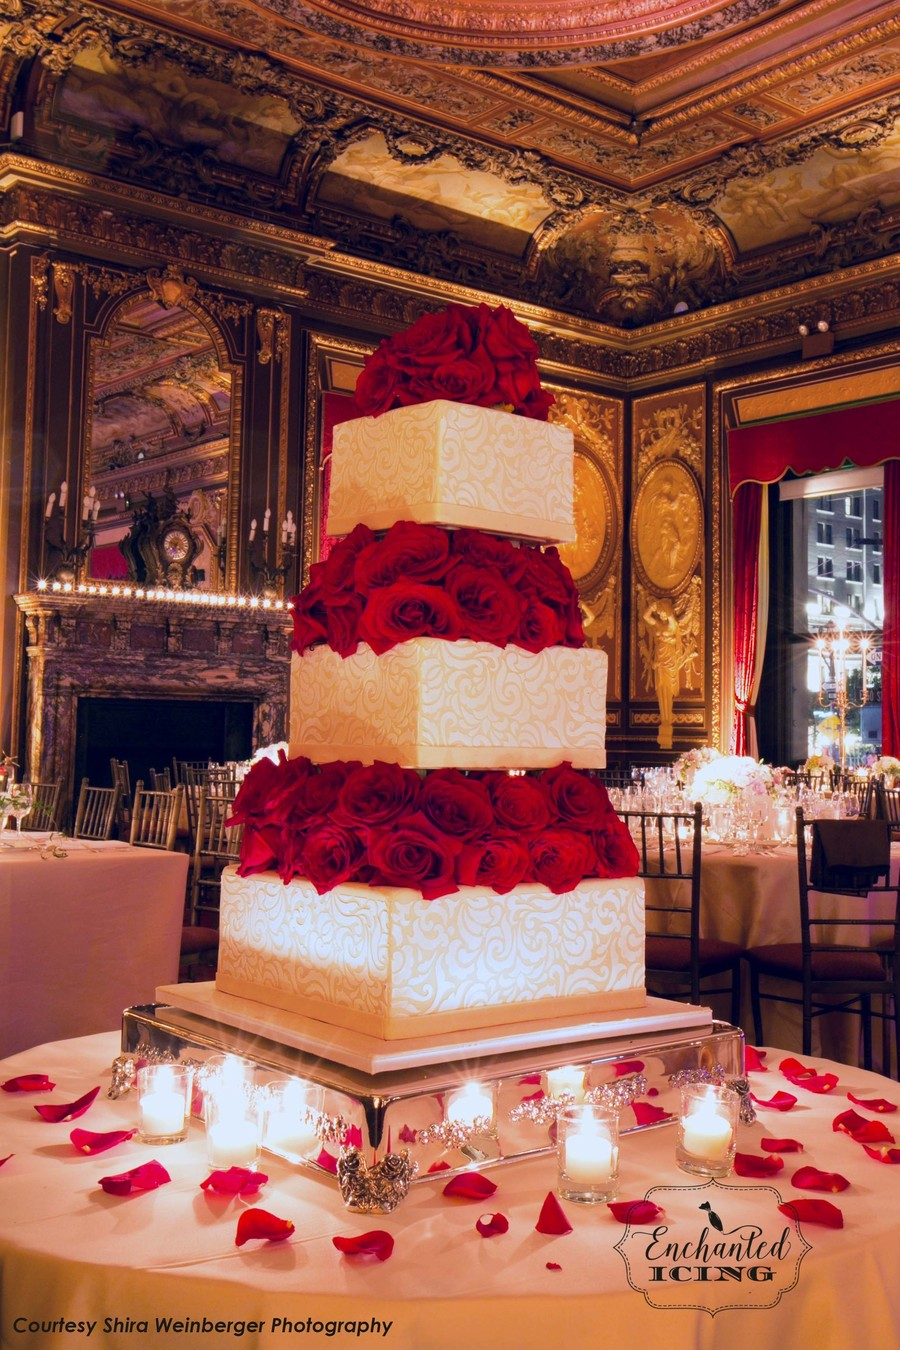 Brocade And Roses Wedding Cake - Enchanted Icing on Cake Central